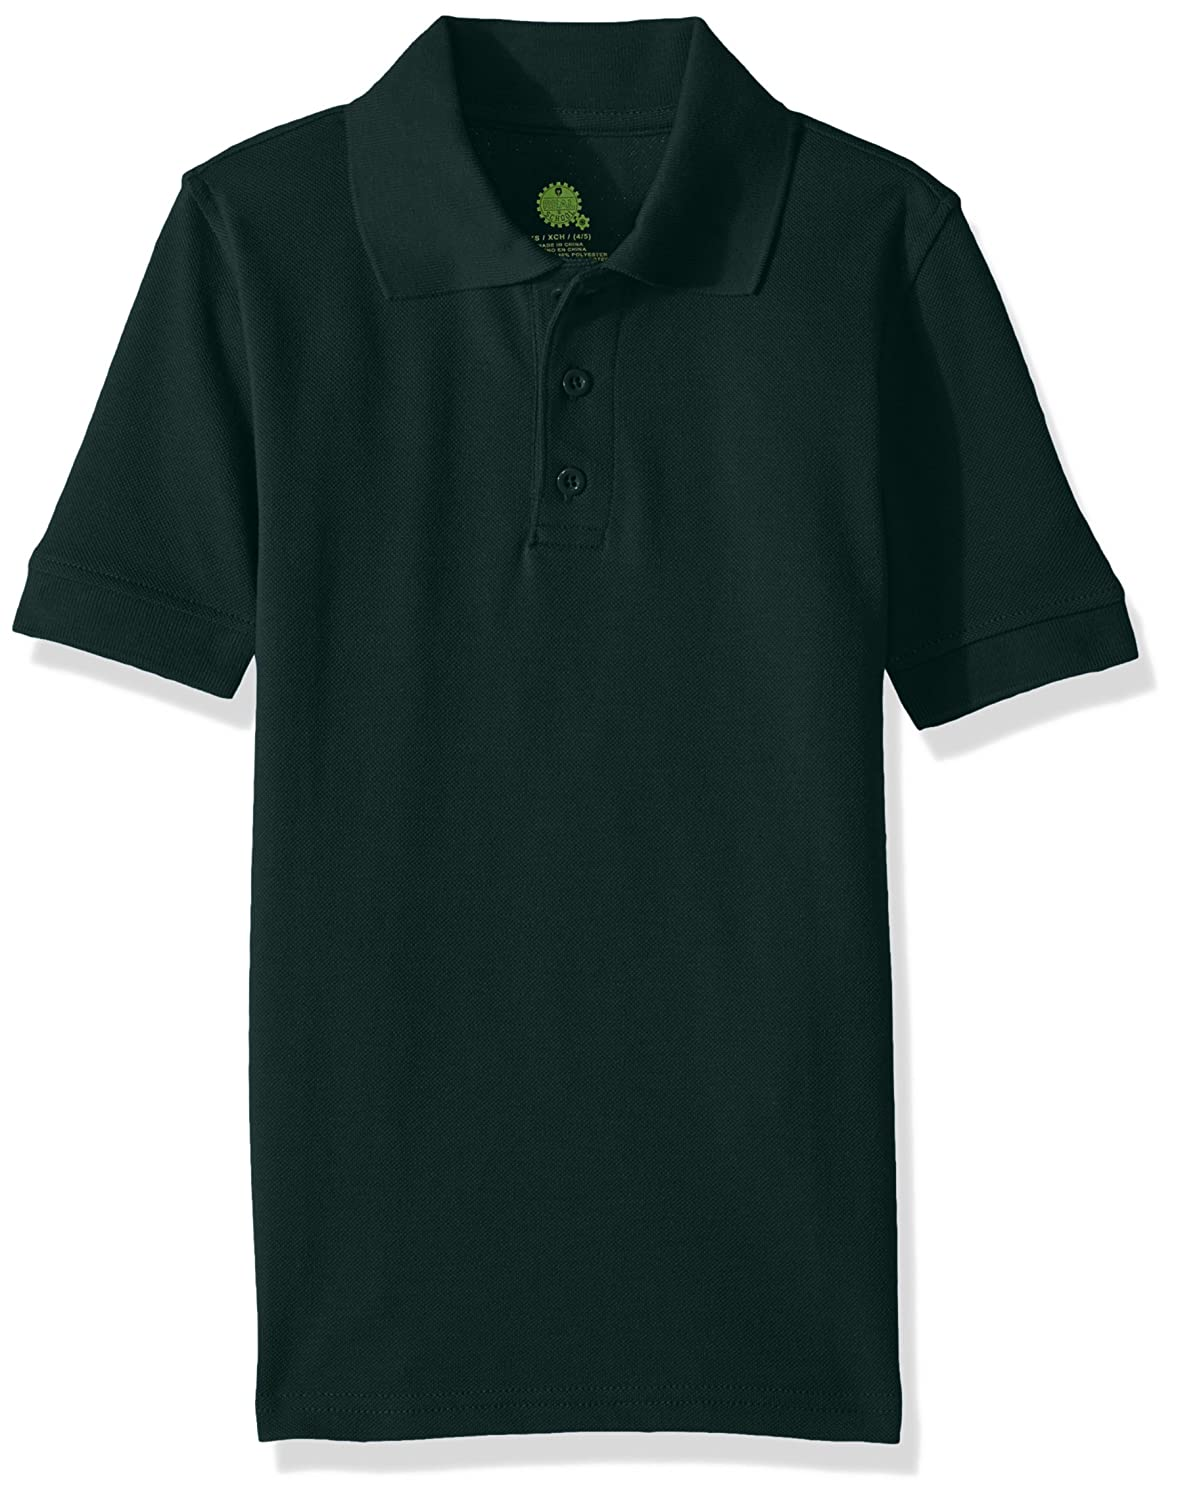 Classroom Uniforms Girls' Short SLV Pique Polo 68112